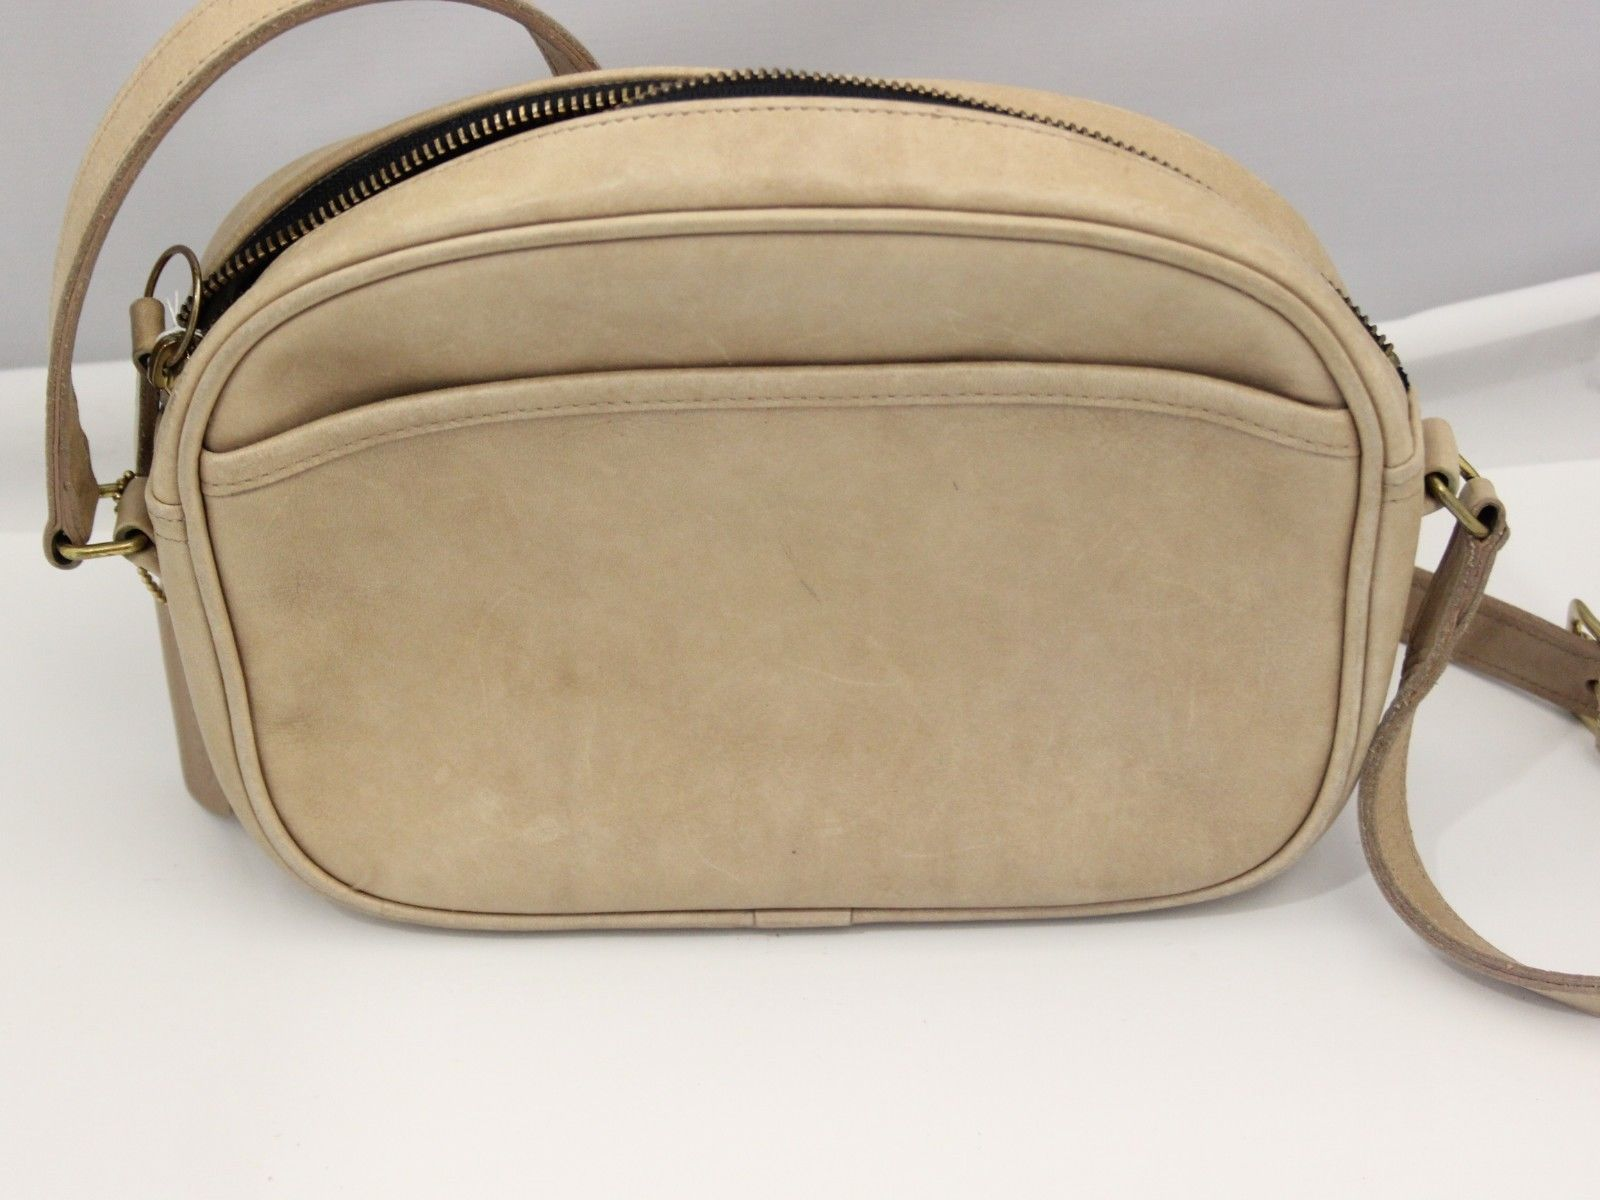 Vintage Cross Body Beige Coach shoulder bag